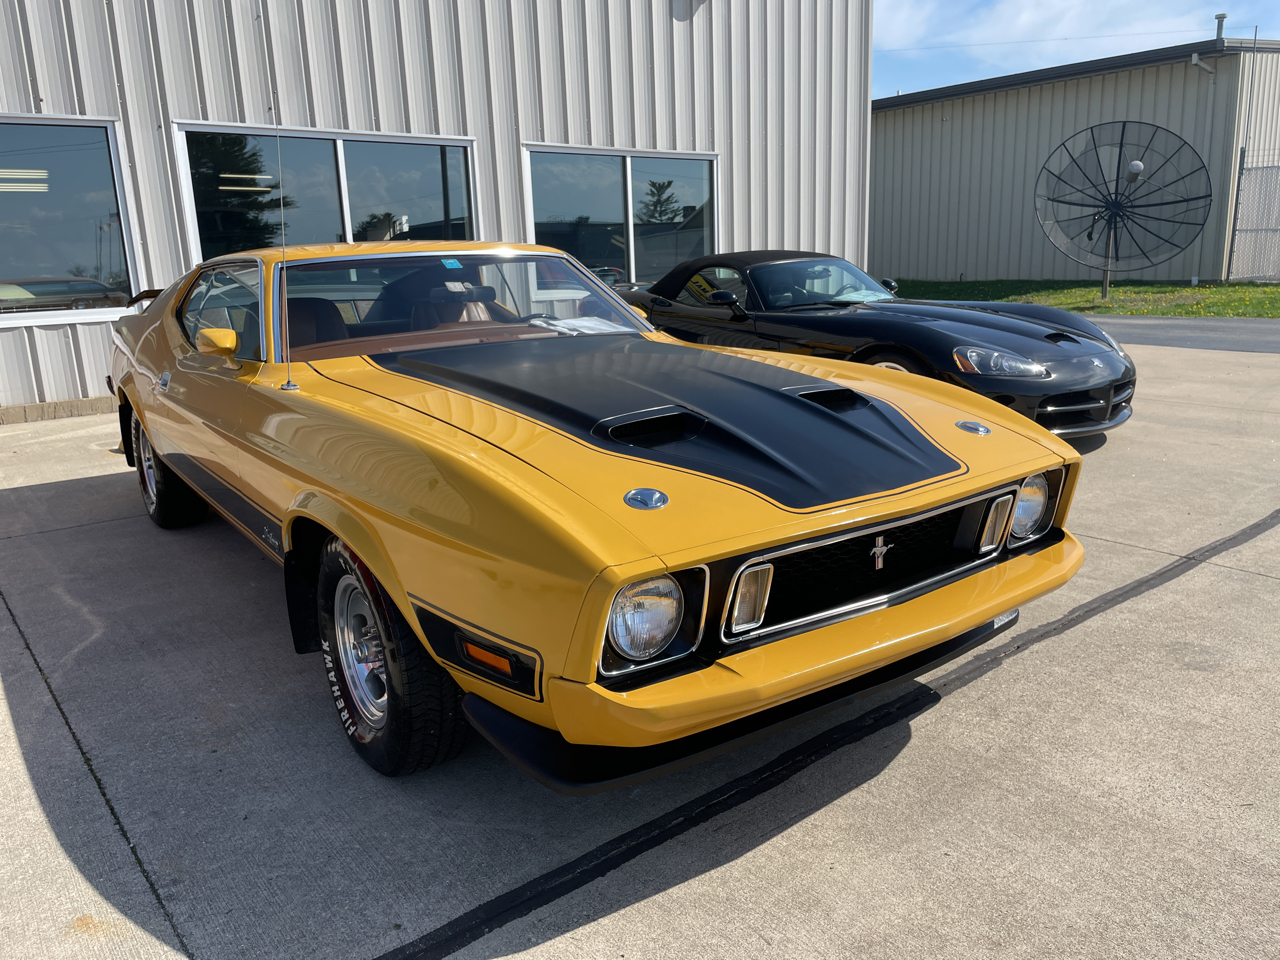 1973 ford mustang fastback $37,000. Used 1973 Ford Mustang Mach 1 Fastback For Sale In Effingham Il 62401 The Automall Of Effingham